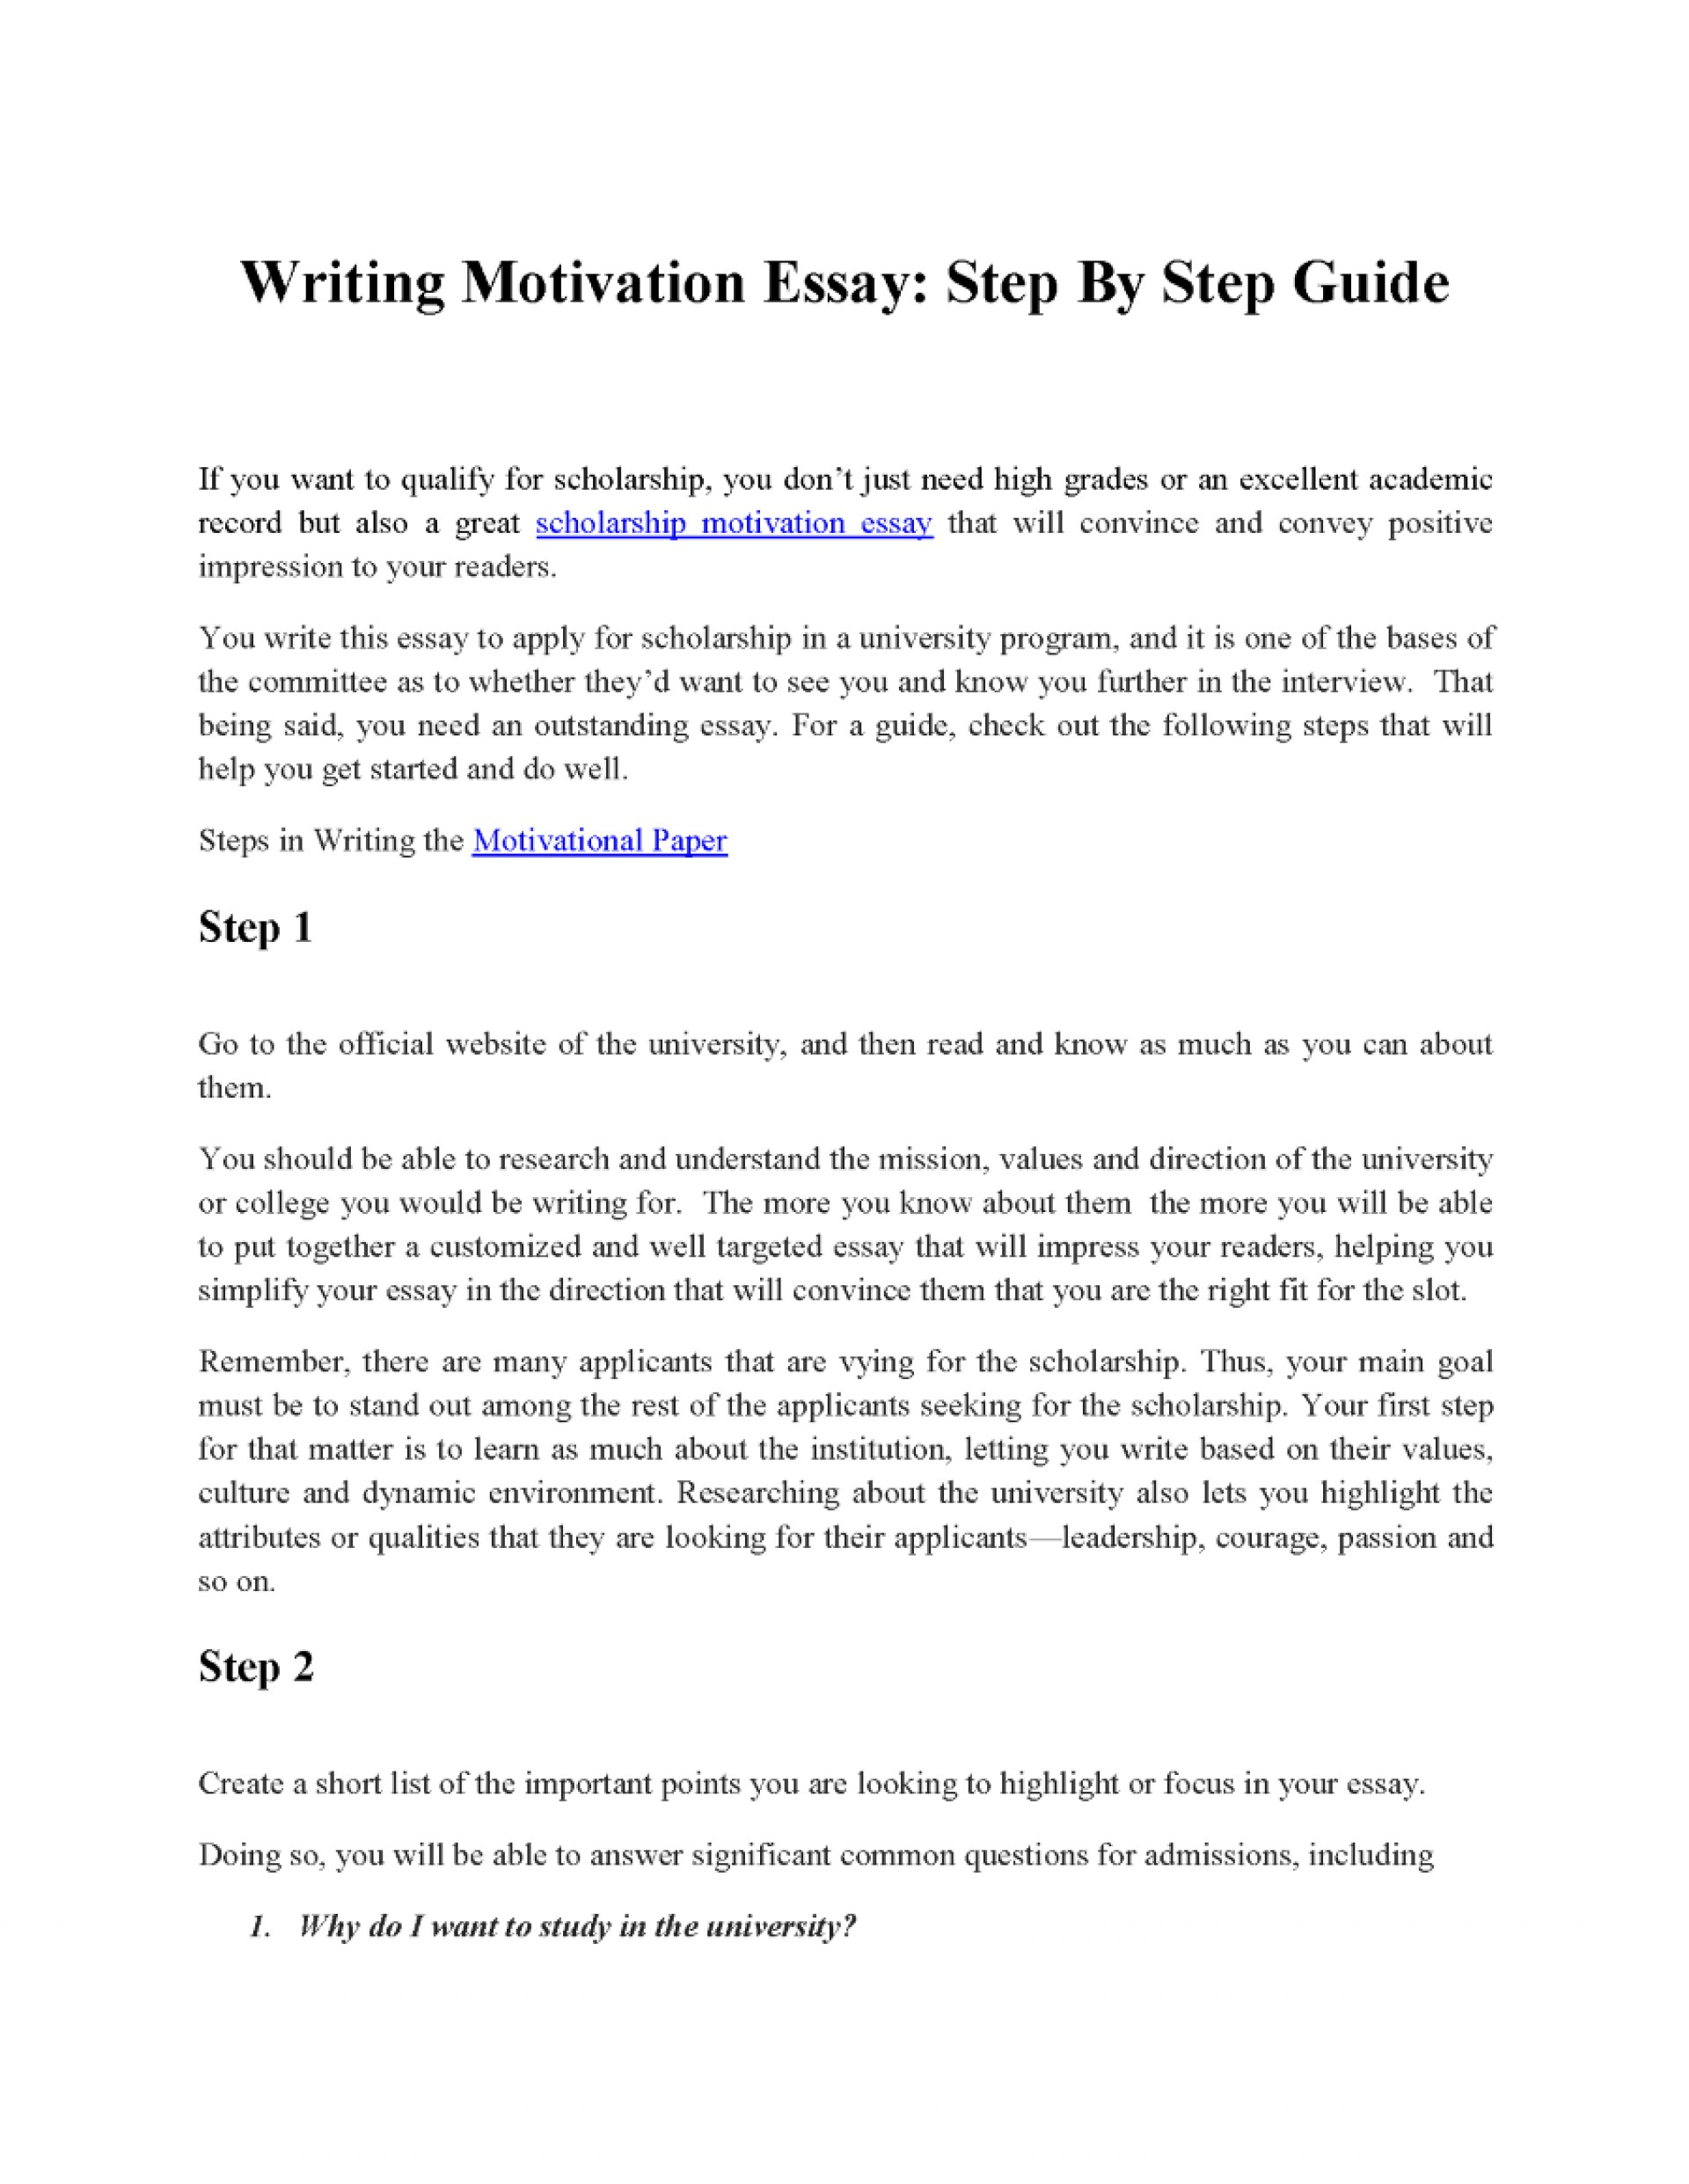 017 2948595 636128784141107500 Slide1 Fs Research Paper Steps To Write Unbelievable 10 A Basic Writing Ppt 1920